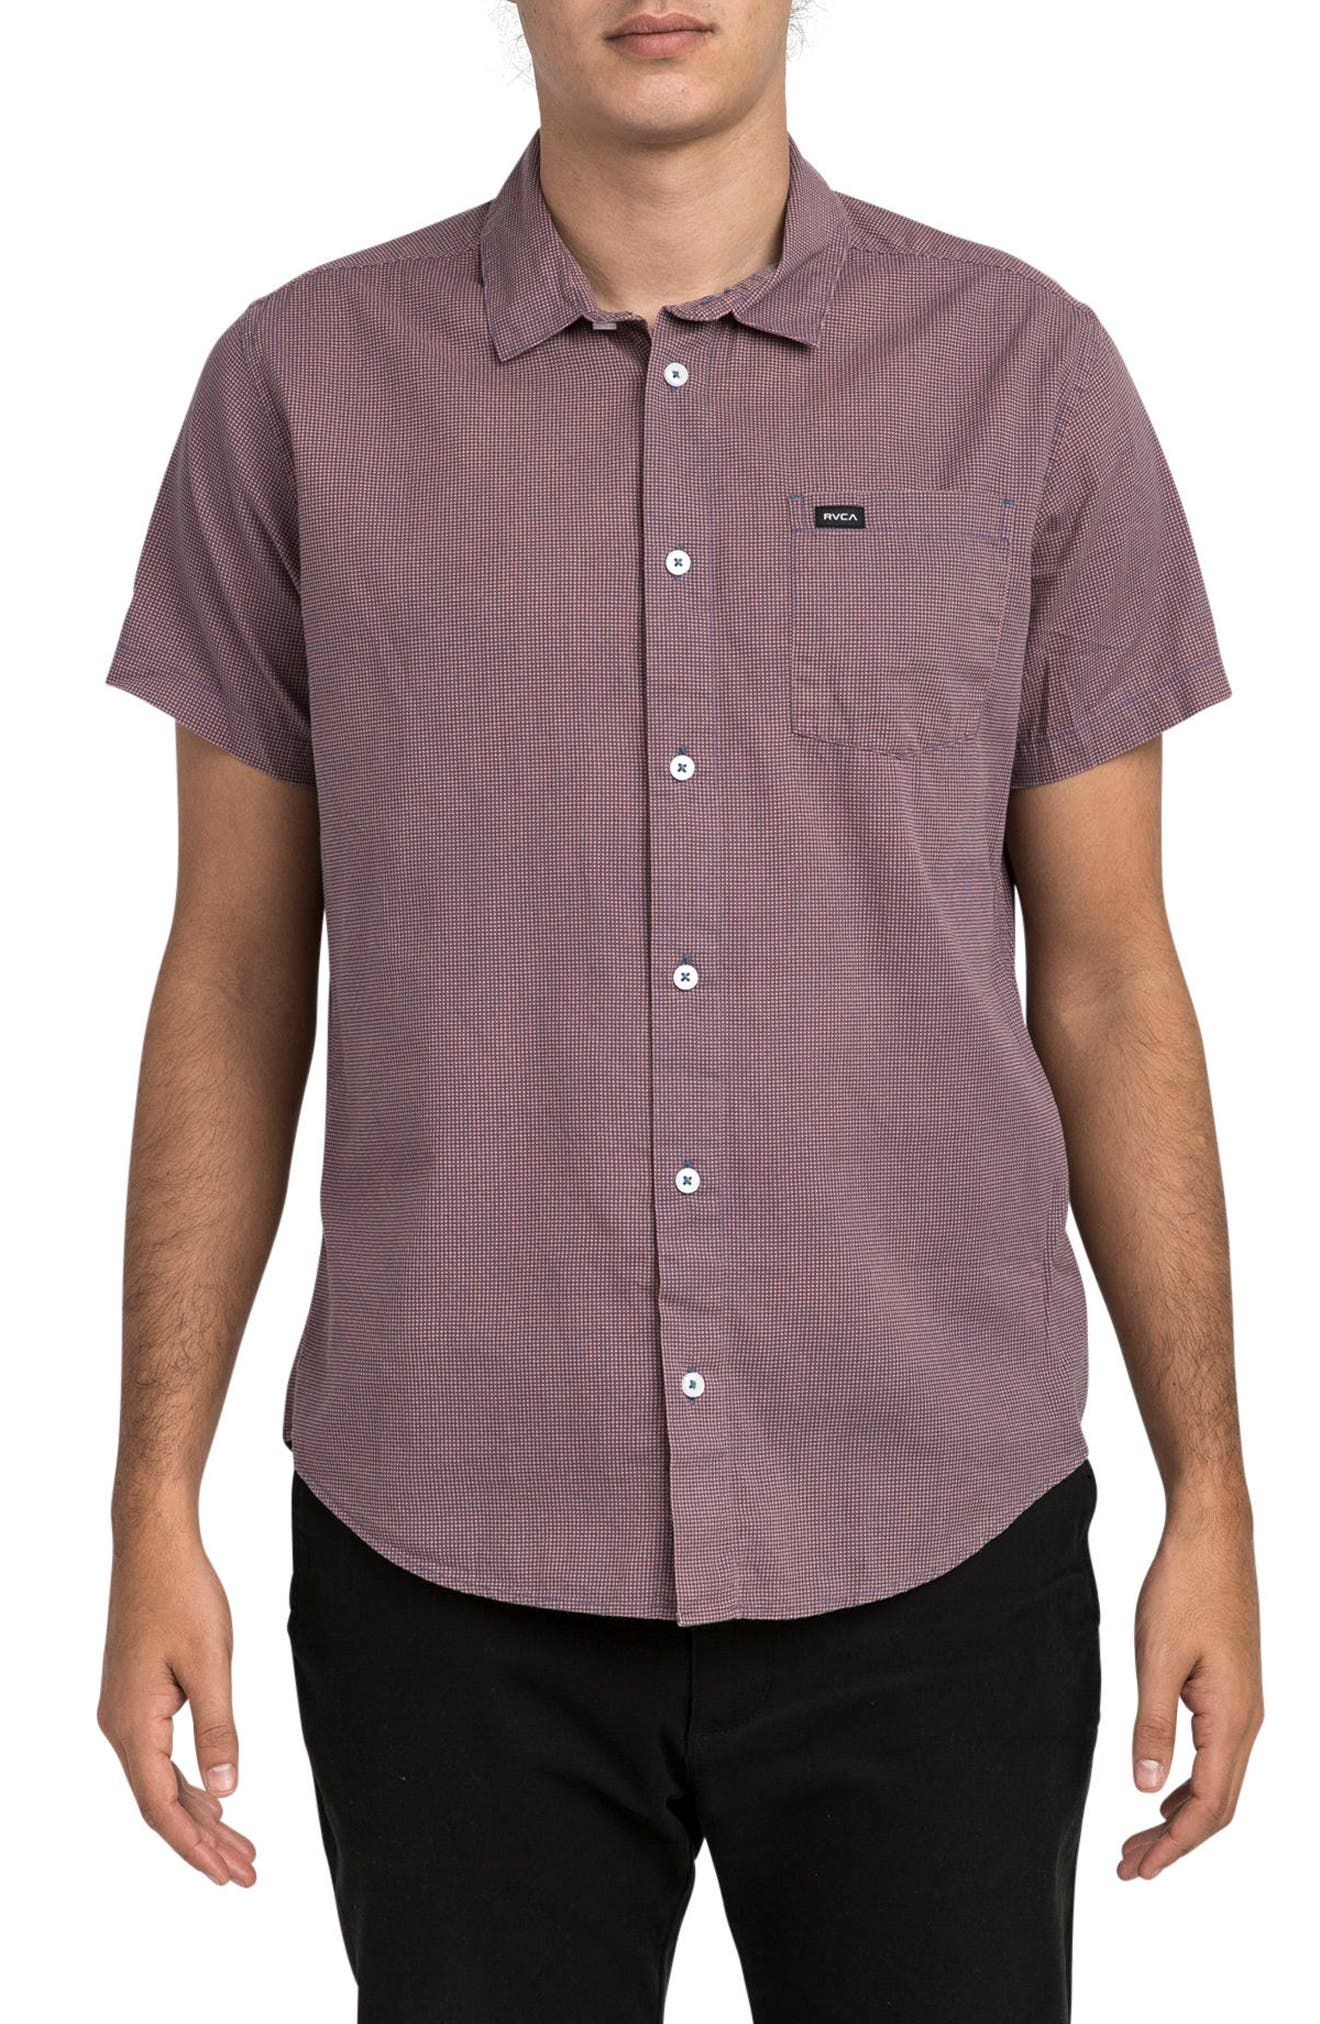 Alternate Image 1 Selected - RVCA No Name Woven Shirt